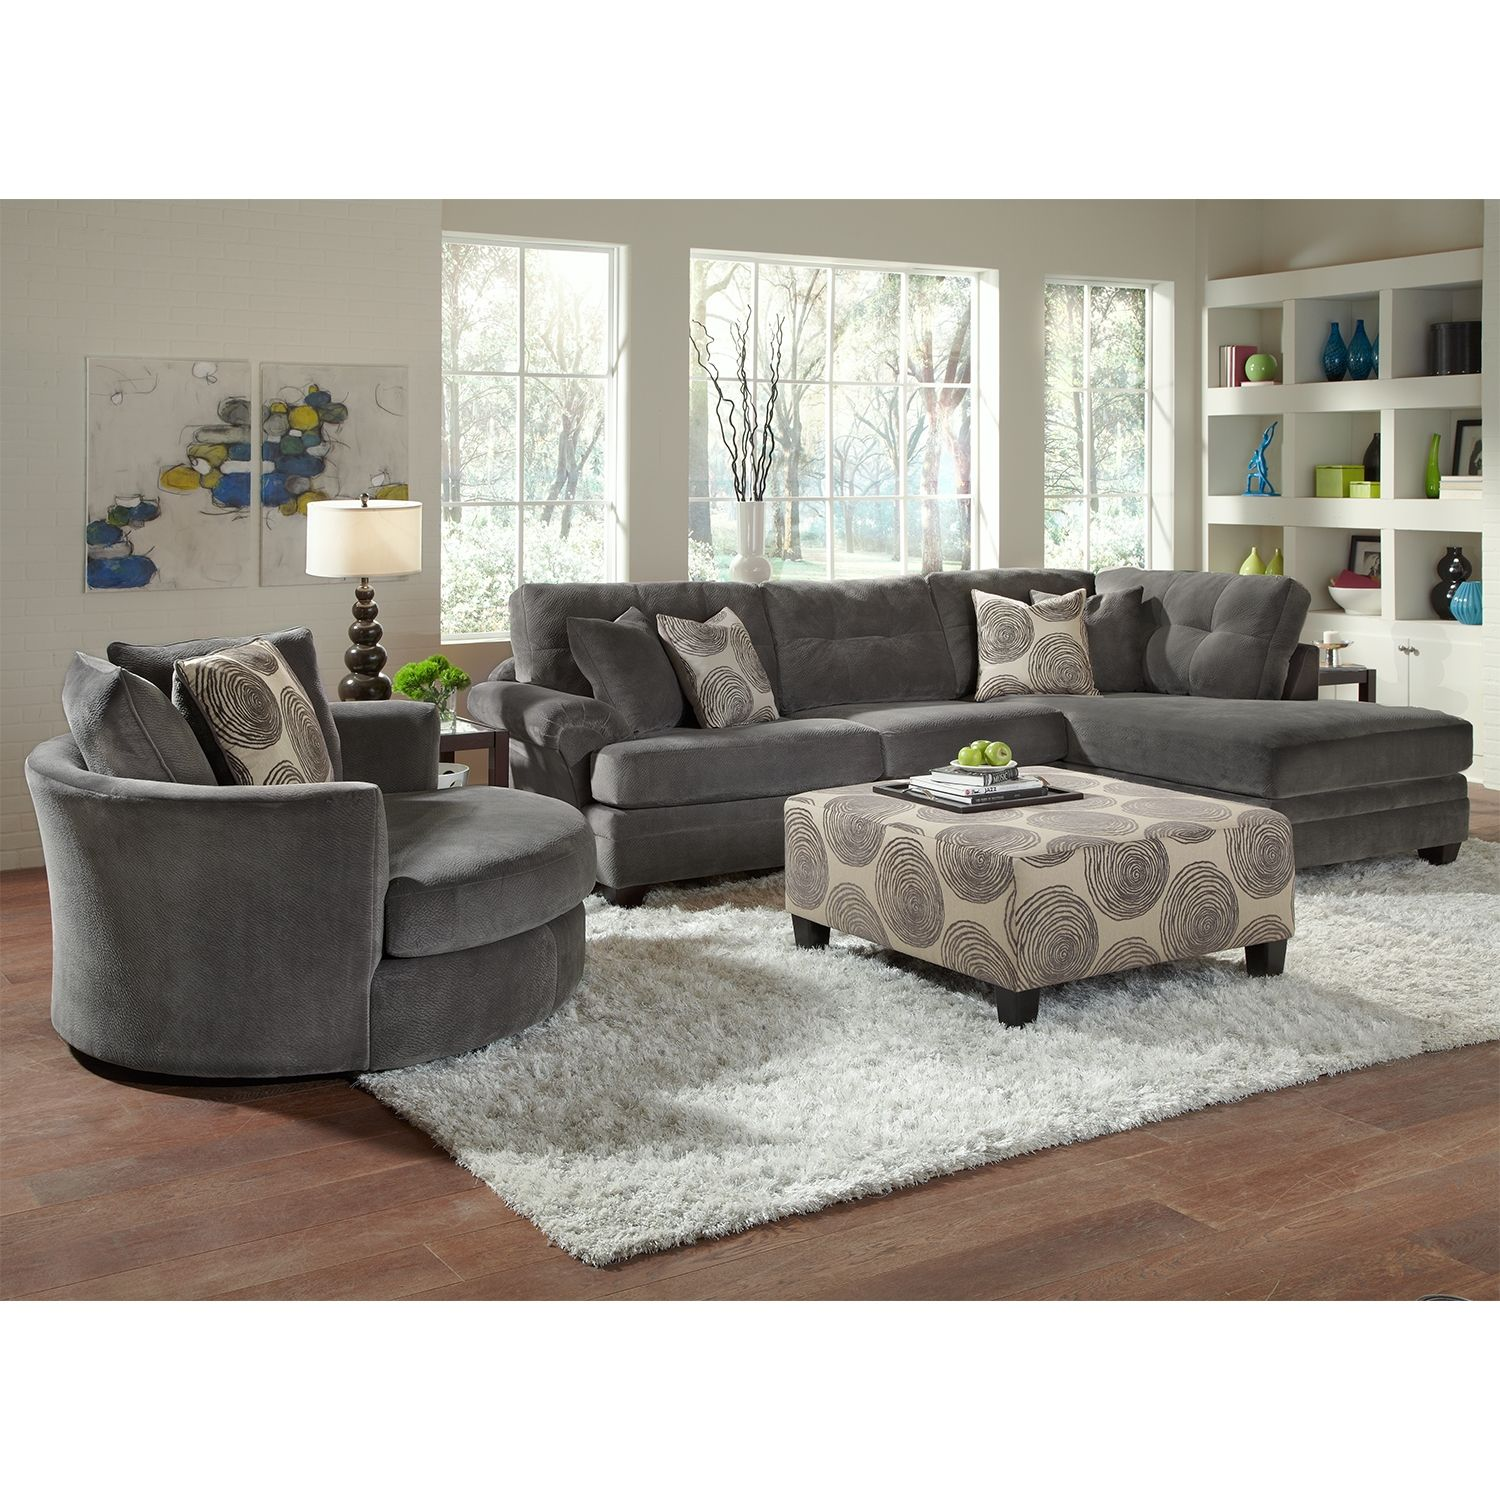 Home City Furniture Set Decoration Beauteous Catalina Gray Upholstery 2 Pcsectional  Furniture  Home . 2017